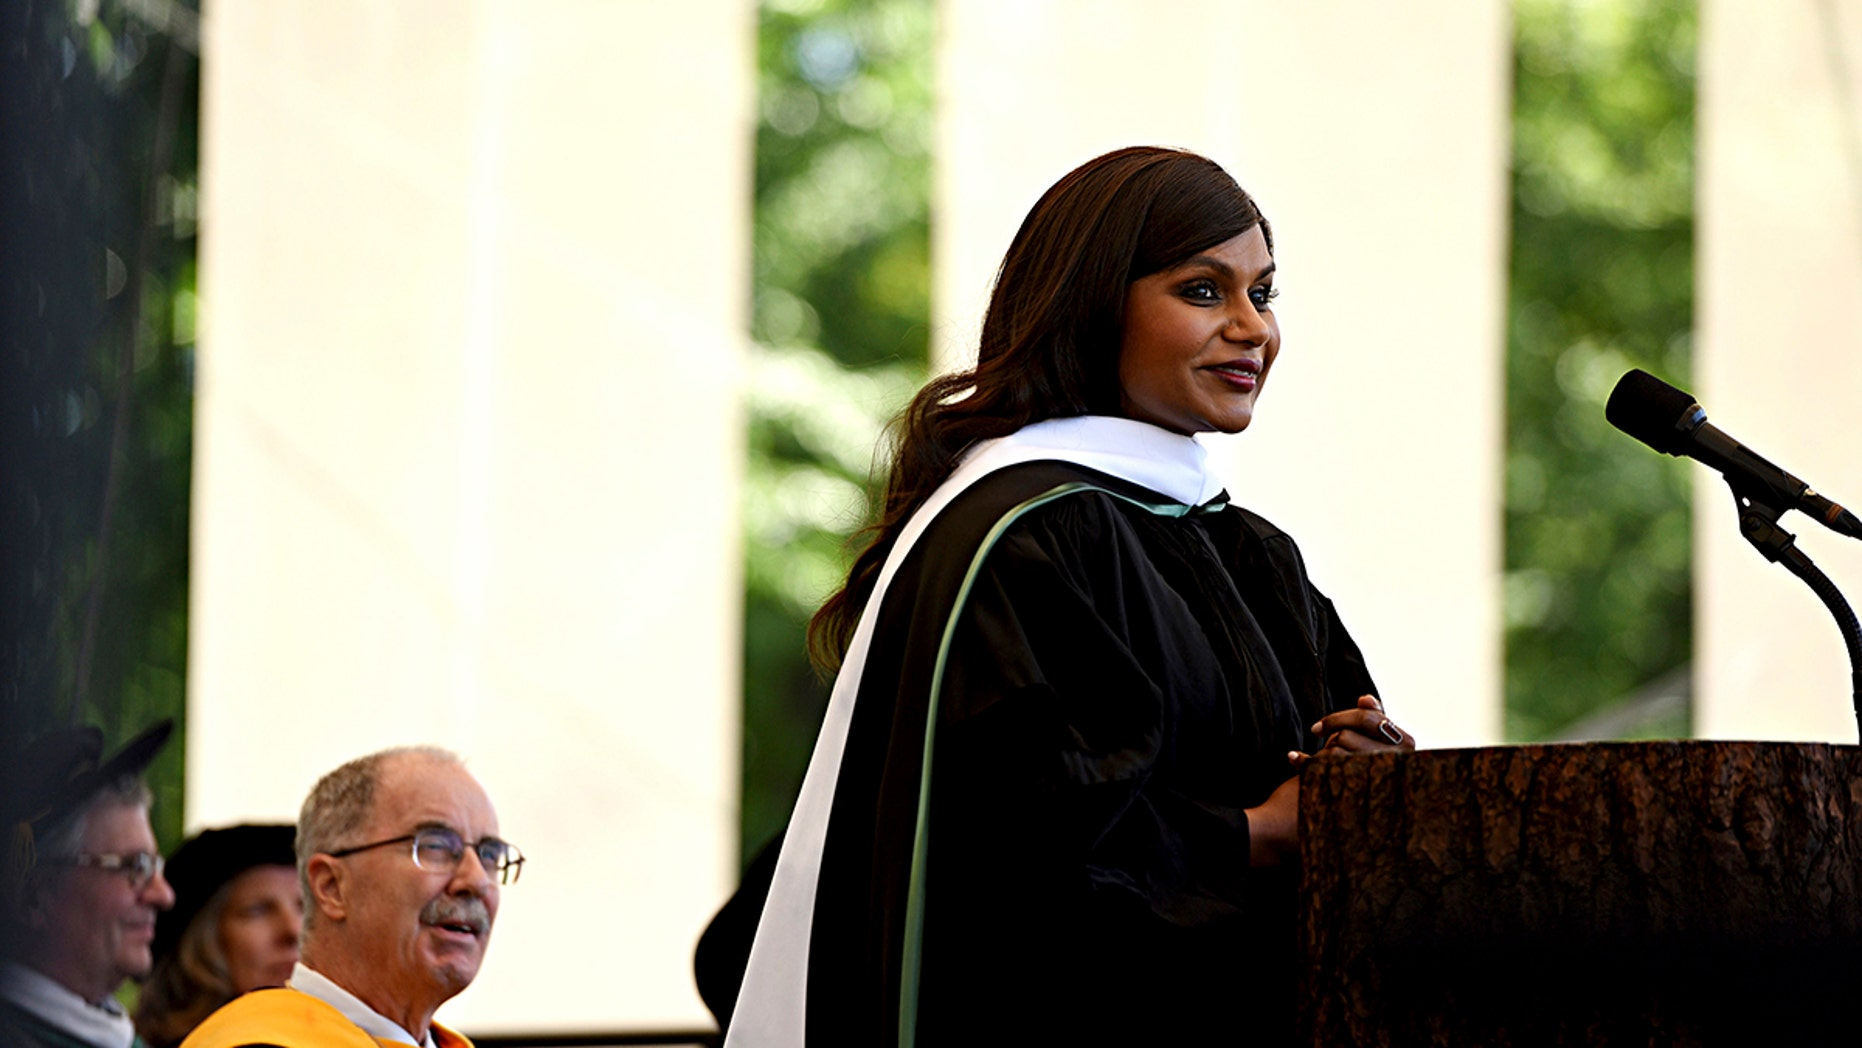 Actor, writer and comedian Mindy Kaling delivers the main address at the Dartmouth College Commencement on Sunday, June 10, 2018, in Hanover, N.H. Kaling graduated from the Ivy League school in 2001. (Jennifer Hauck/The Valley News via AP)